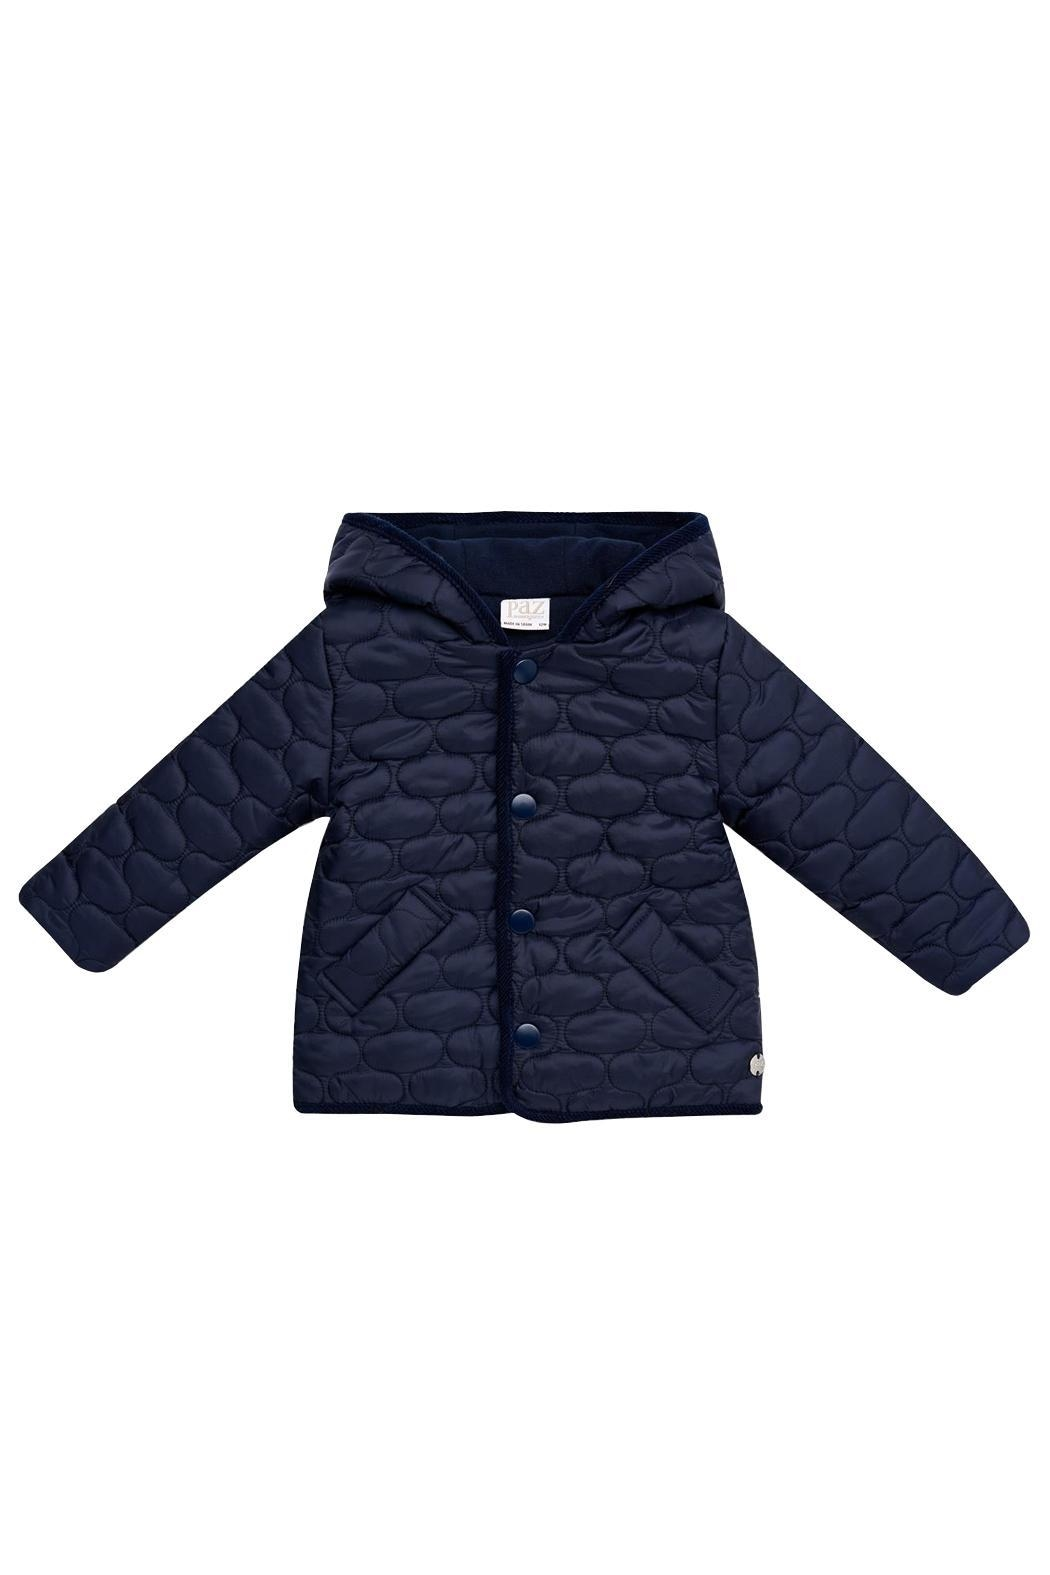 Paz Rodriguez Navy Quilted Coat. - Main Image